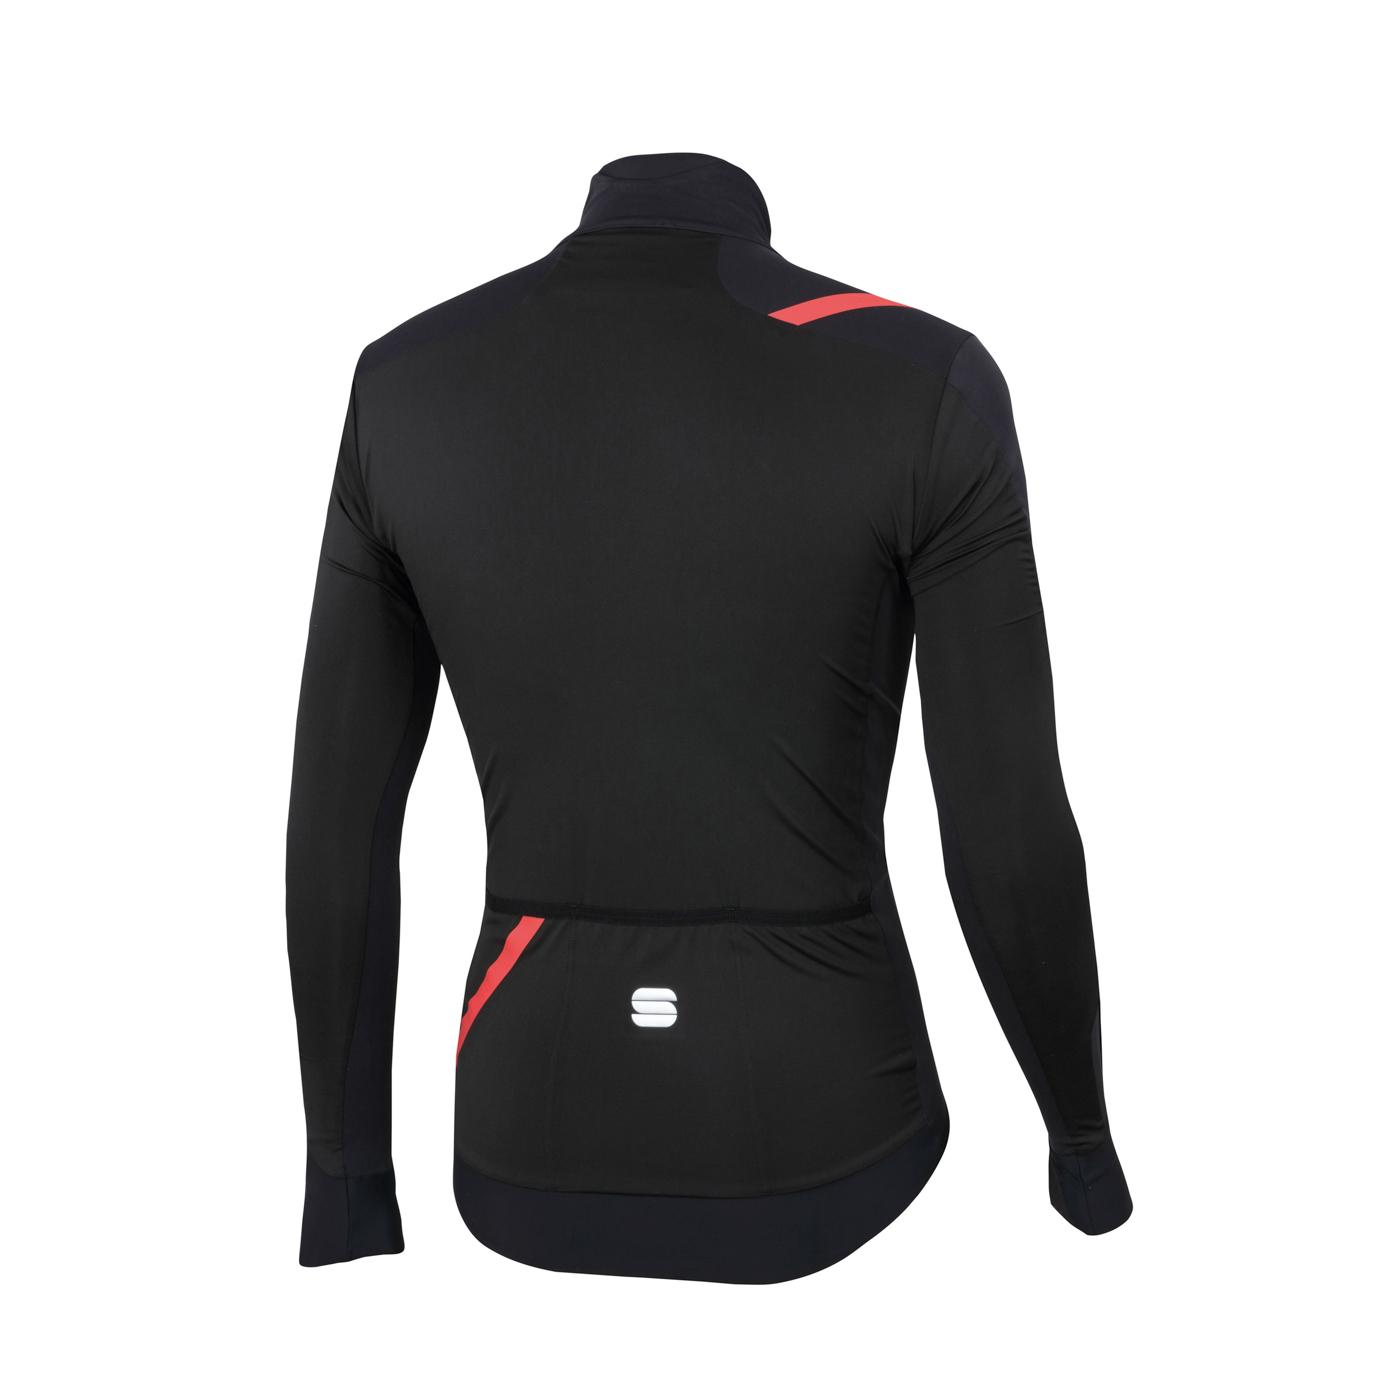 Sportful Fietsjack Lange mouwen Zeer sterk waterafstotend voor Heren Zwart - SF Fiandre Light No Rain Jacket-Black